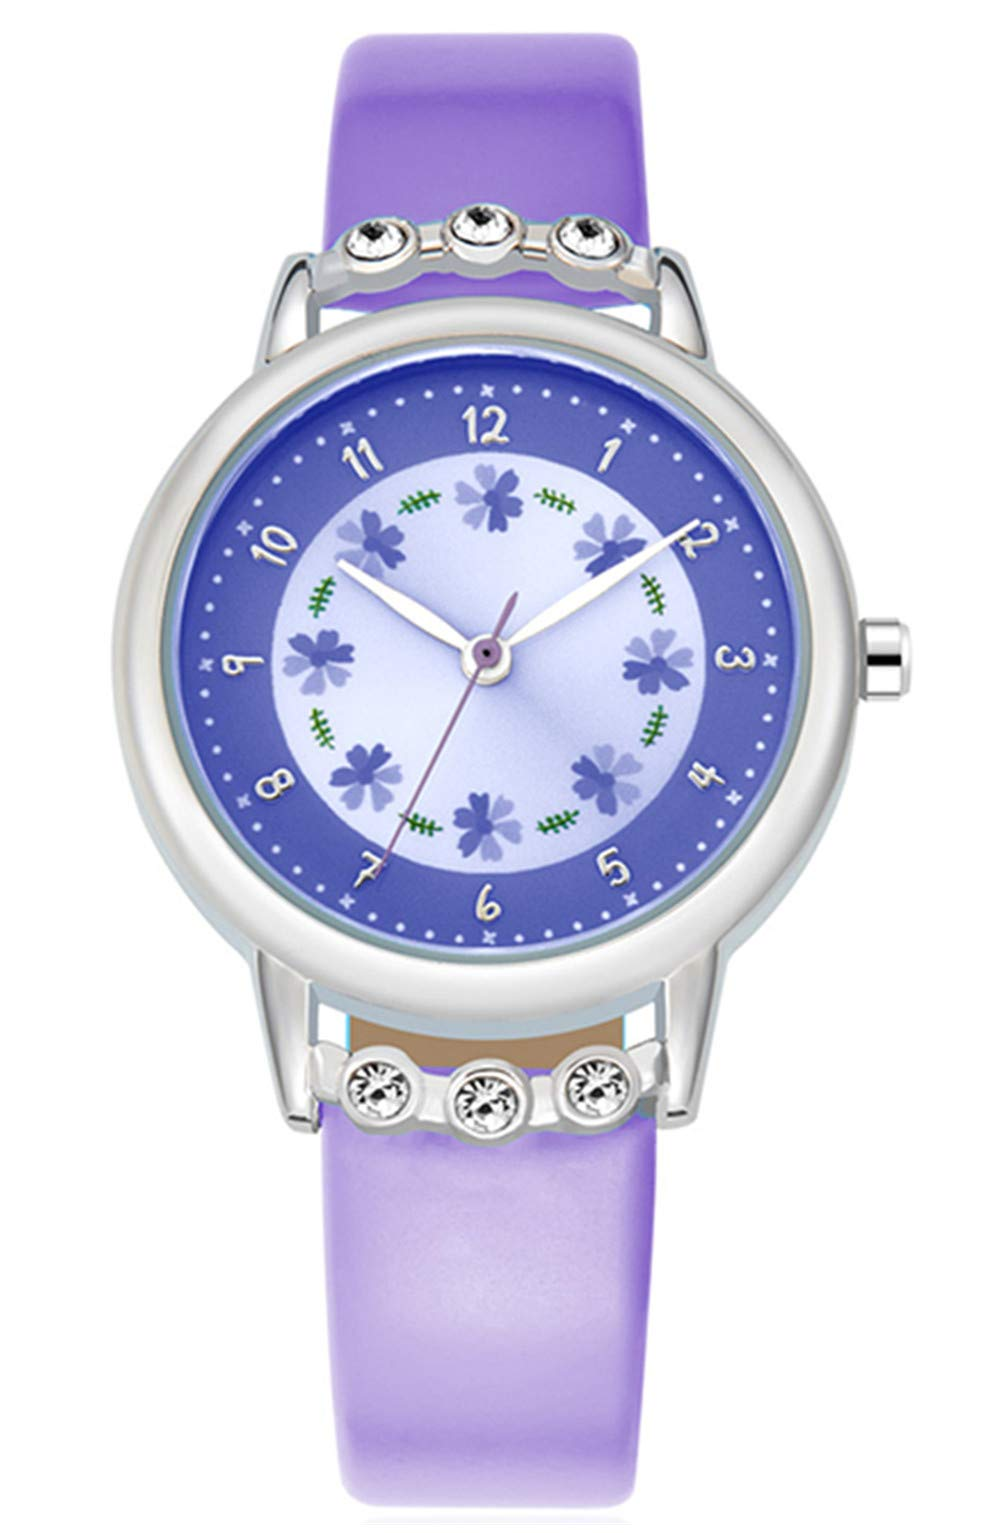 WUTAN Girls Watch Adorable Leather Strap Purple Wrist Band Flowers Dial with Diamond Cute Watch for Girls Casual Waterproof Wristwatches for Kids by WUTAN